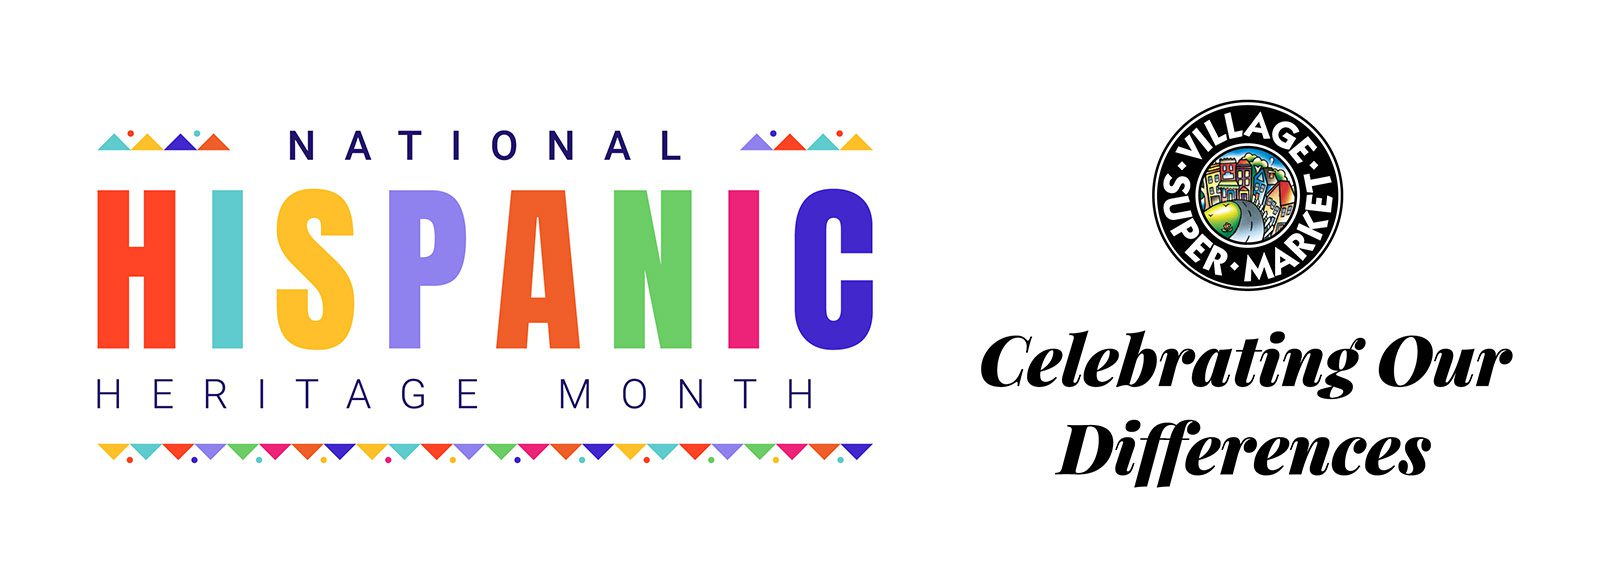 Join us for our Hispanic Heritage Month celebration!